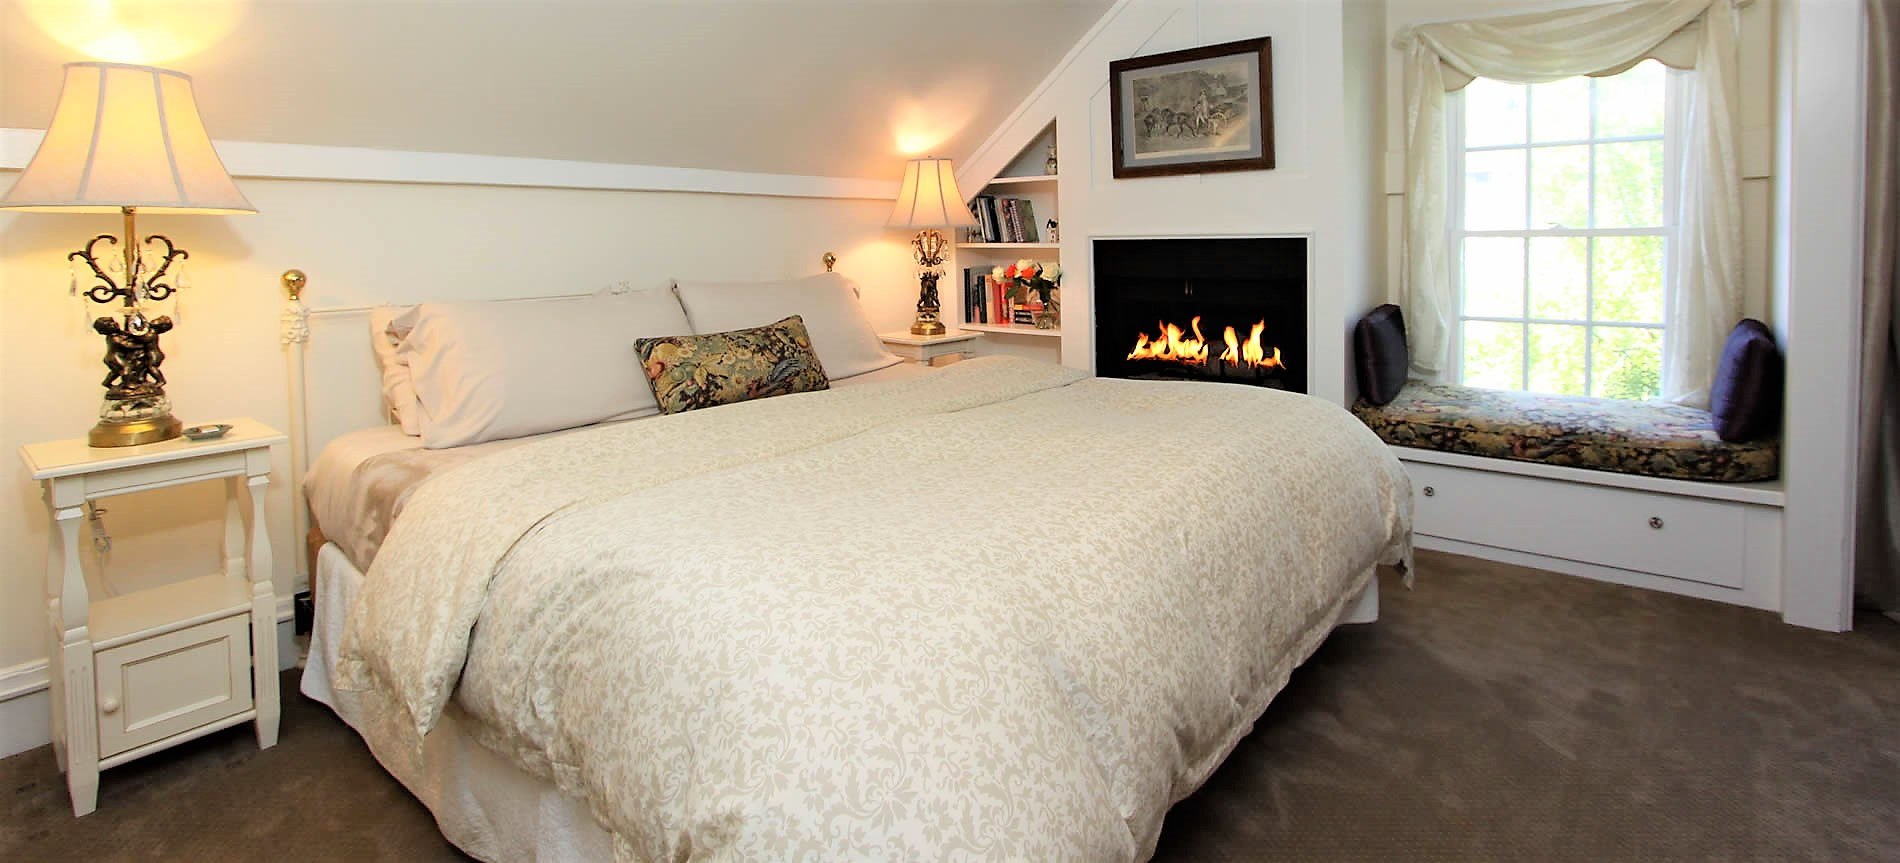 cambria bed and breakfast guestroom with bed and fireplace